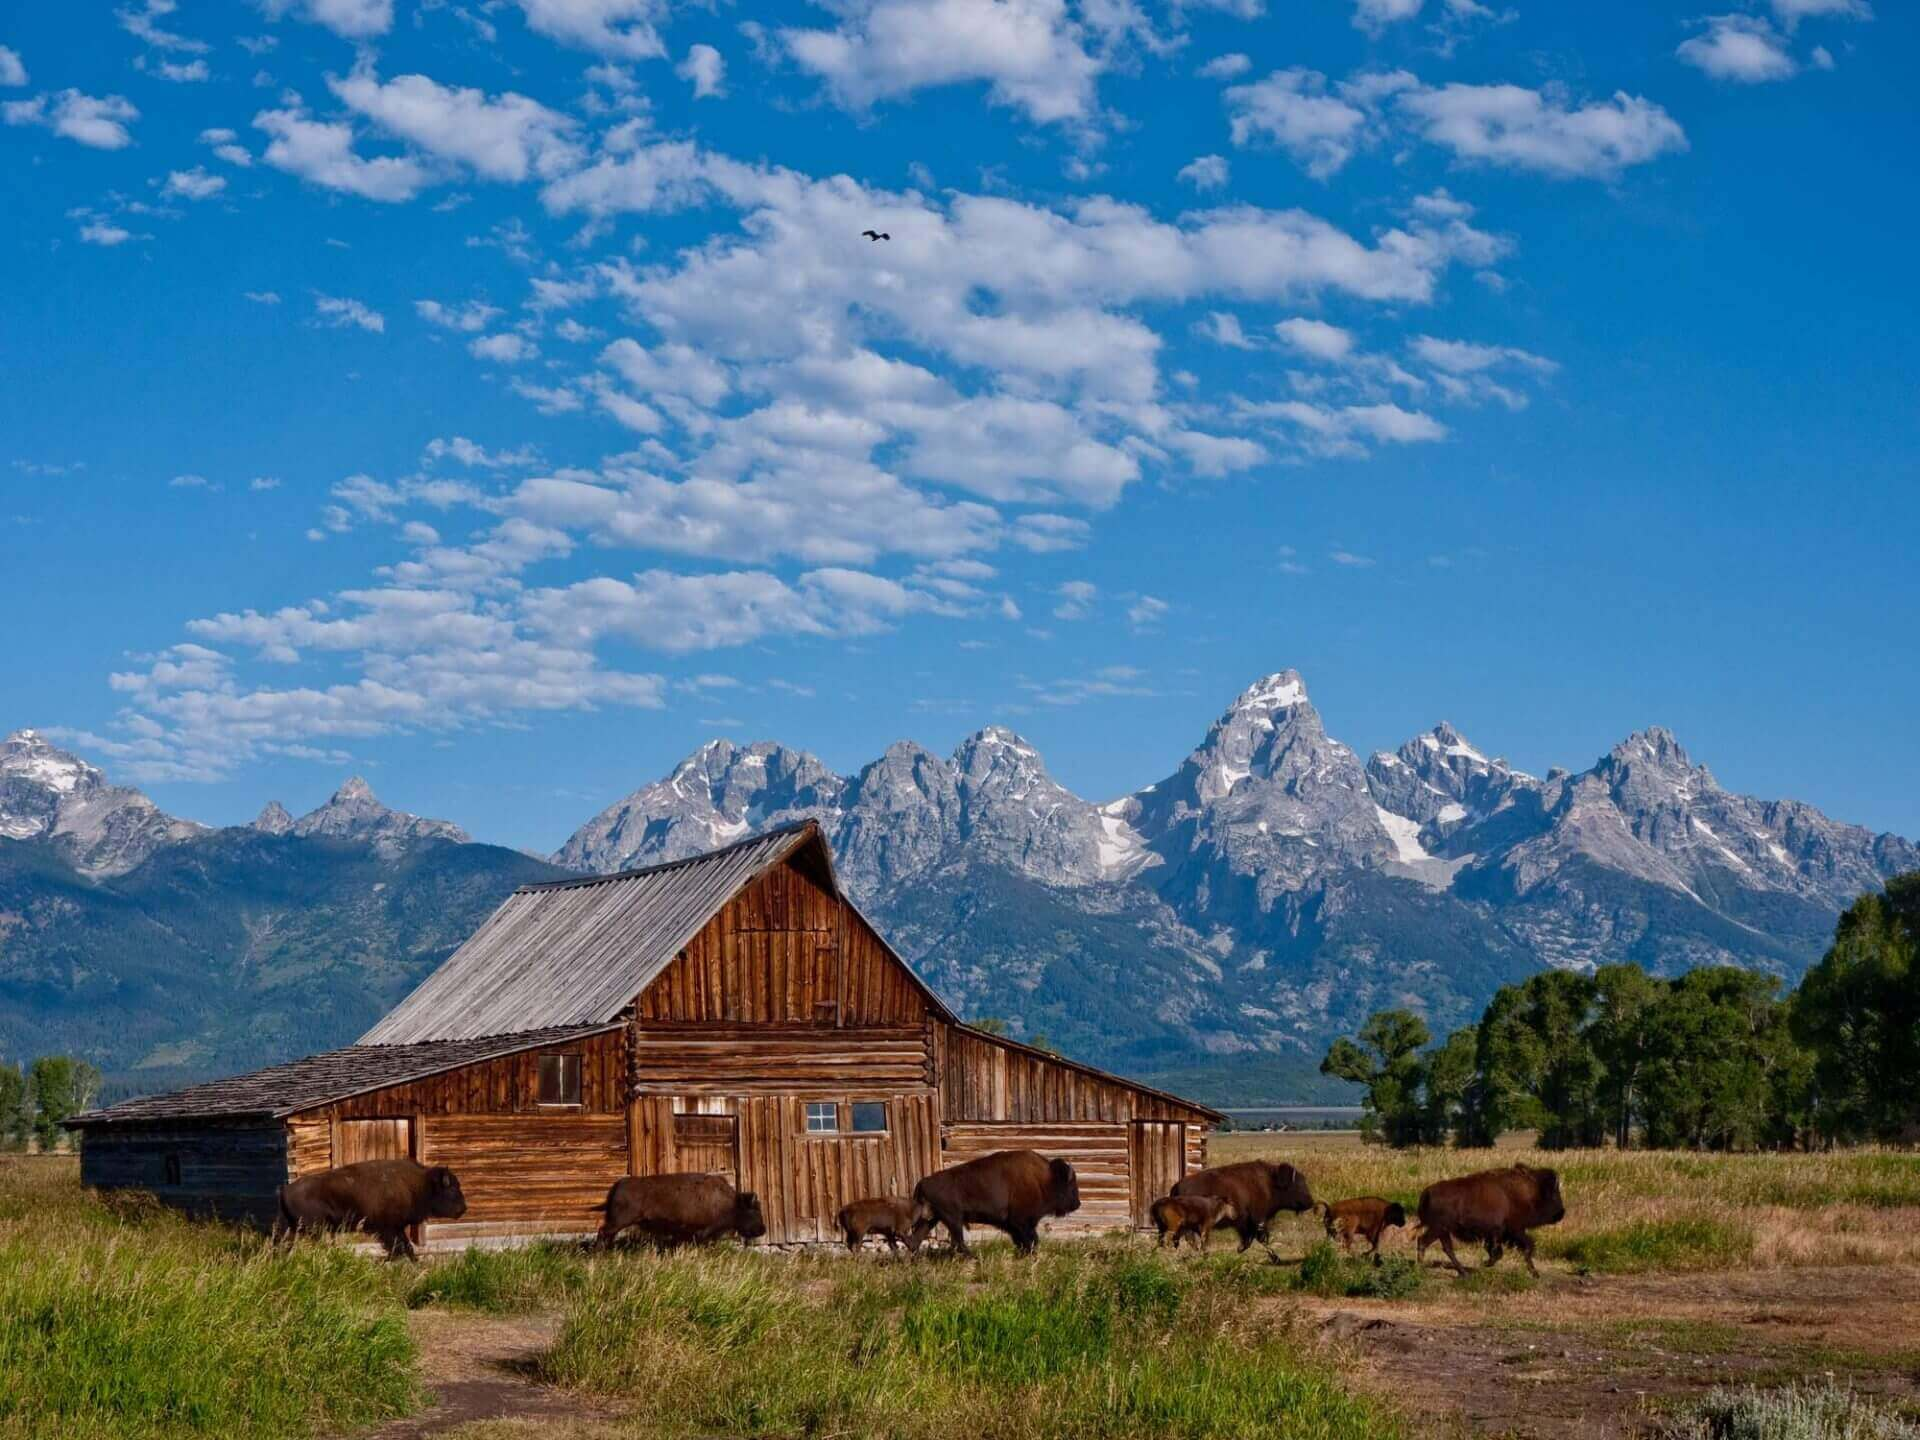 old barn in summertime with mountains in background and buffalo crossing in front